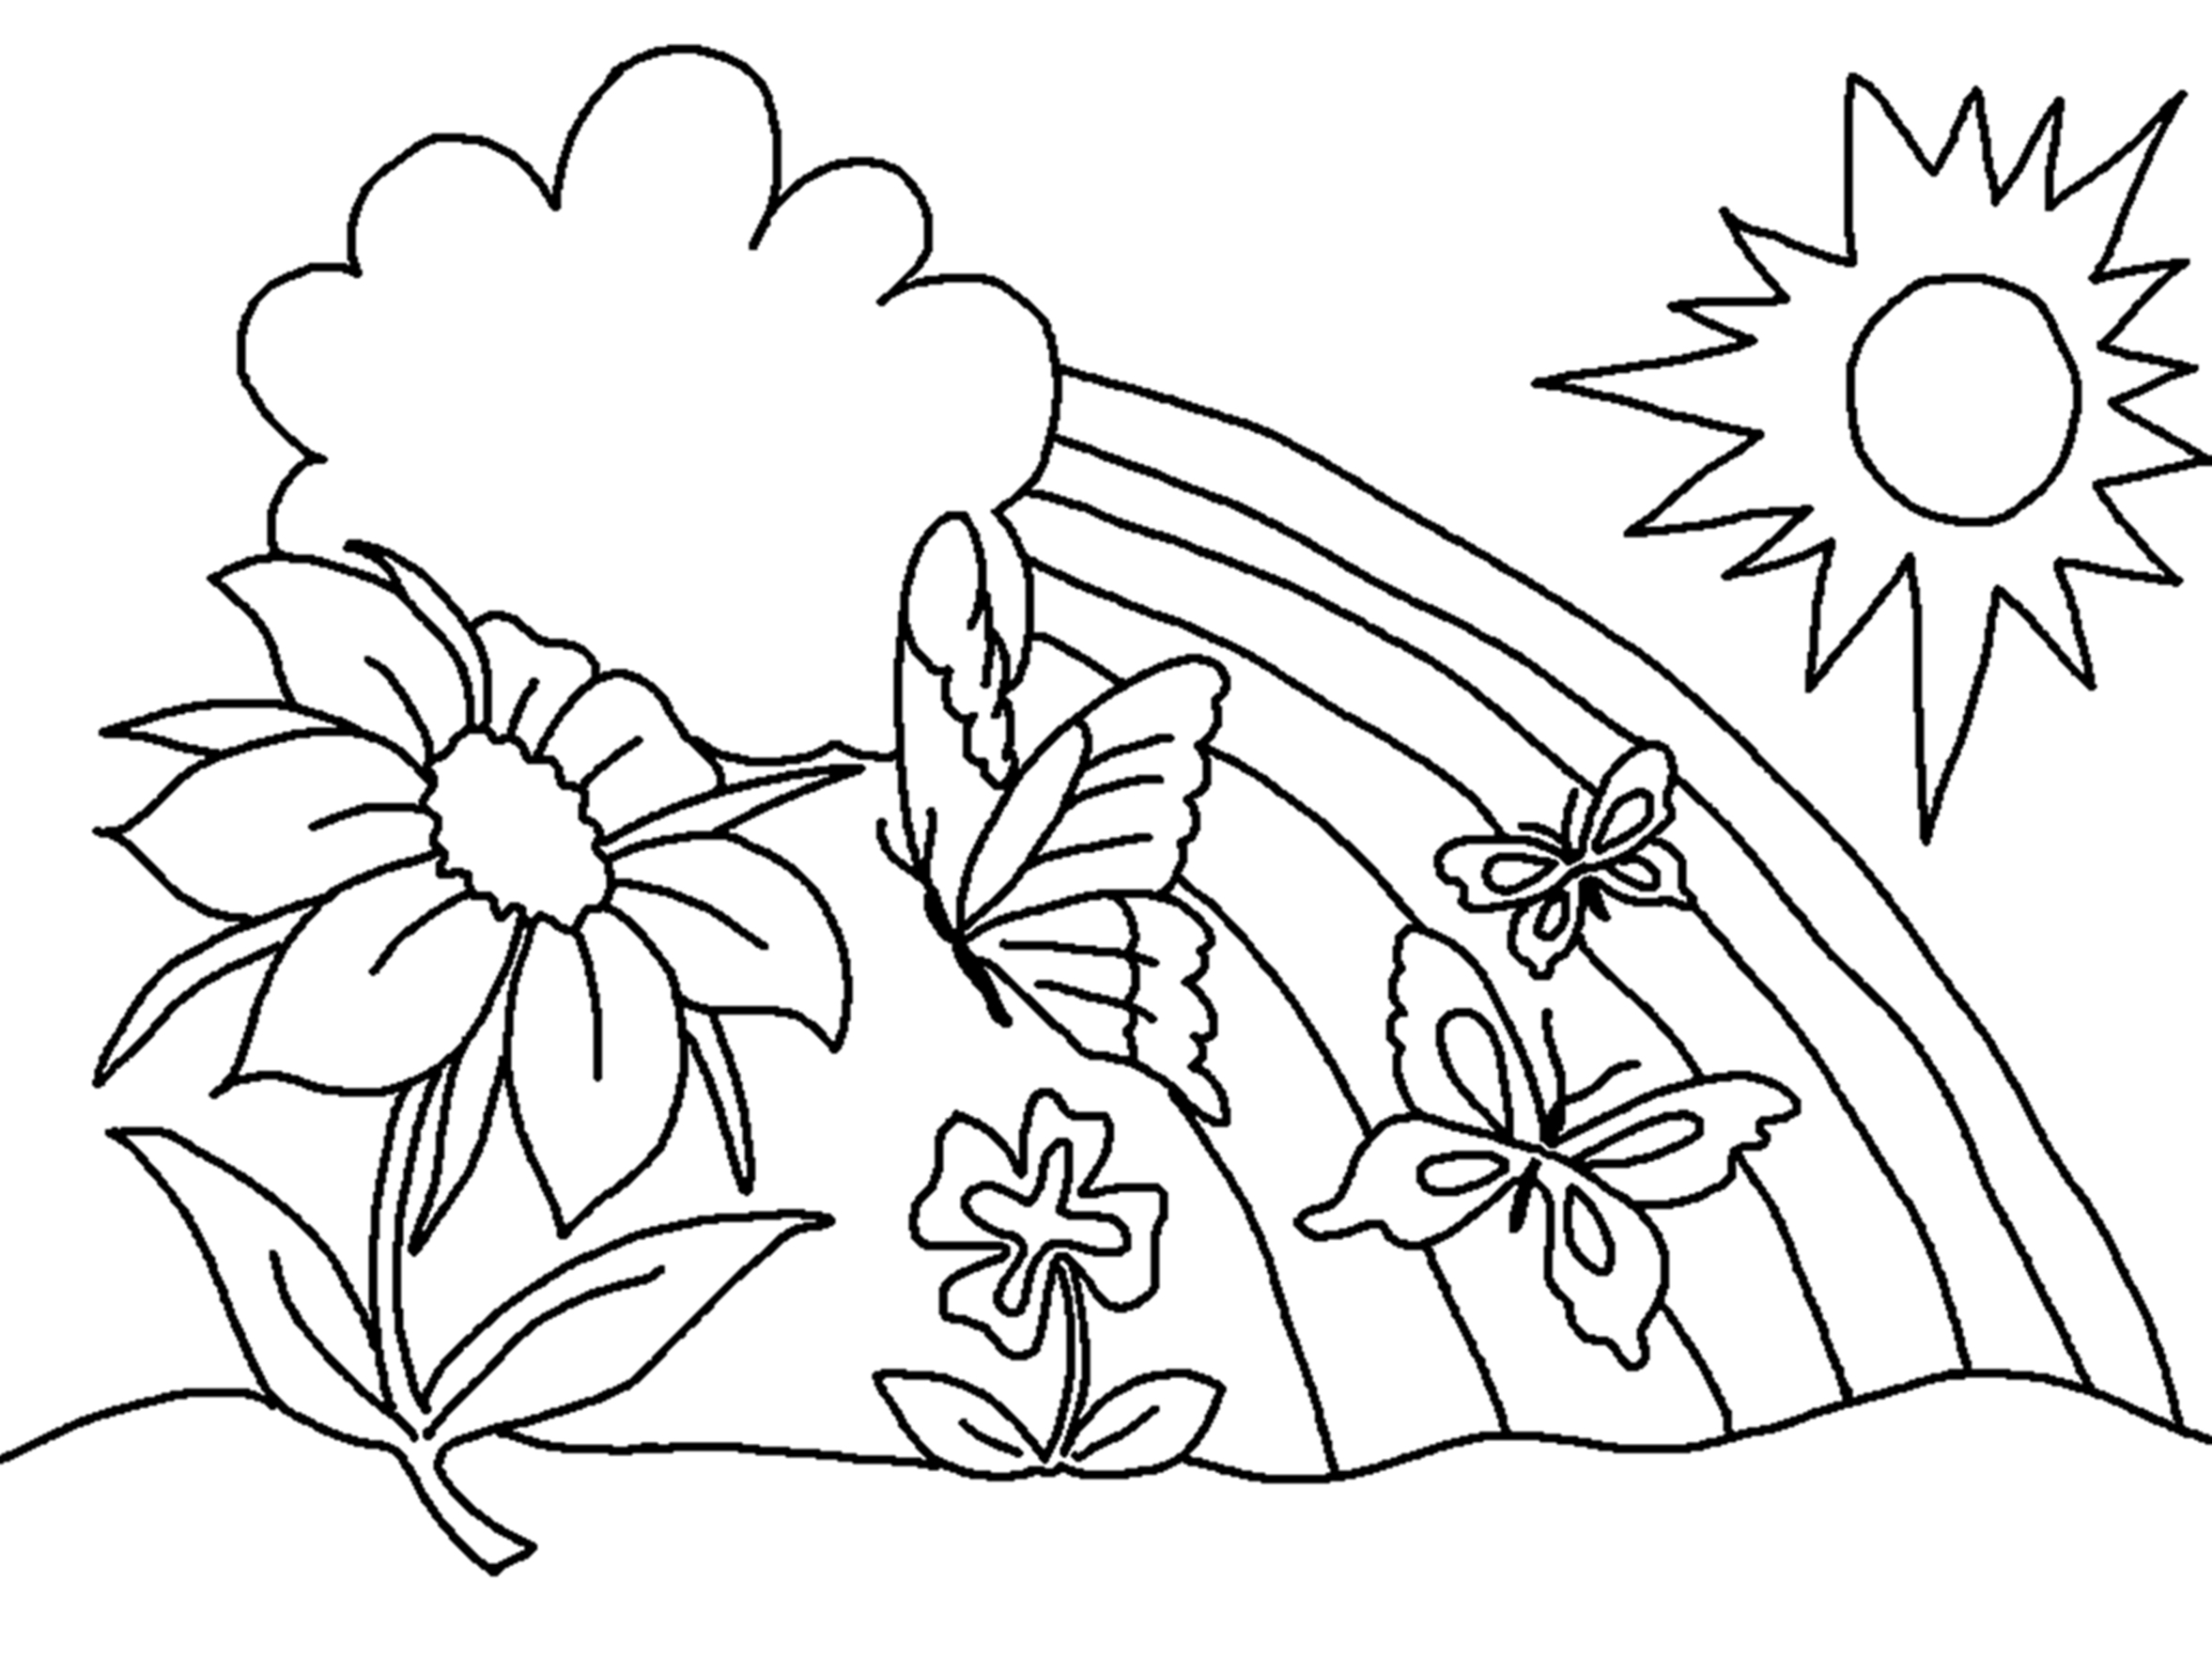 Spring flowers drawing at getdrawings free for personal use 2355x1766 coloring pages for kids flowers colouring in cure print draw mightylinksfo Choice Image